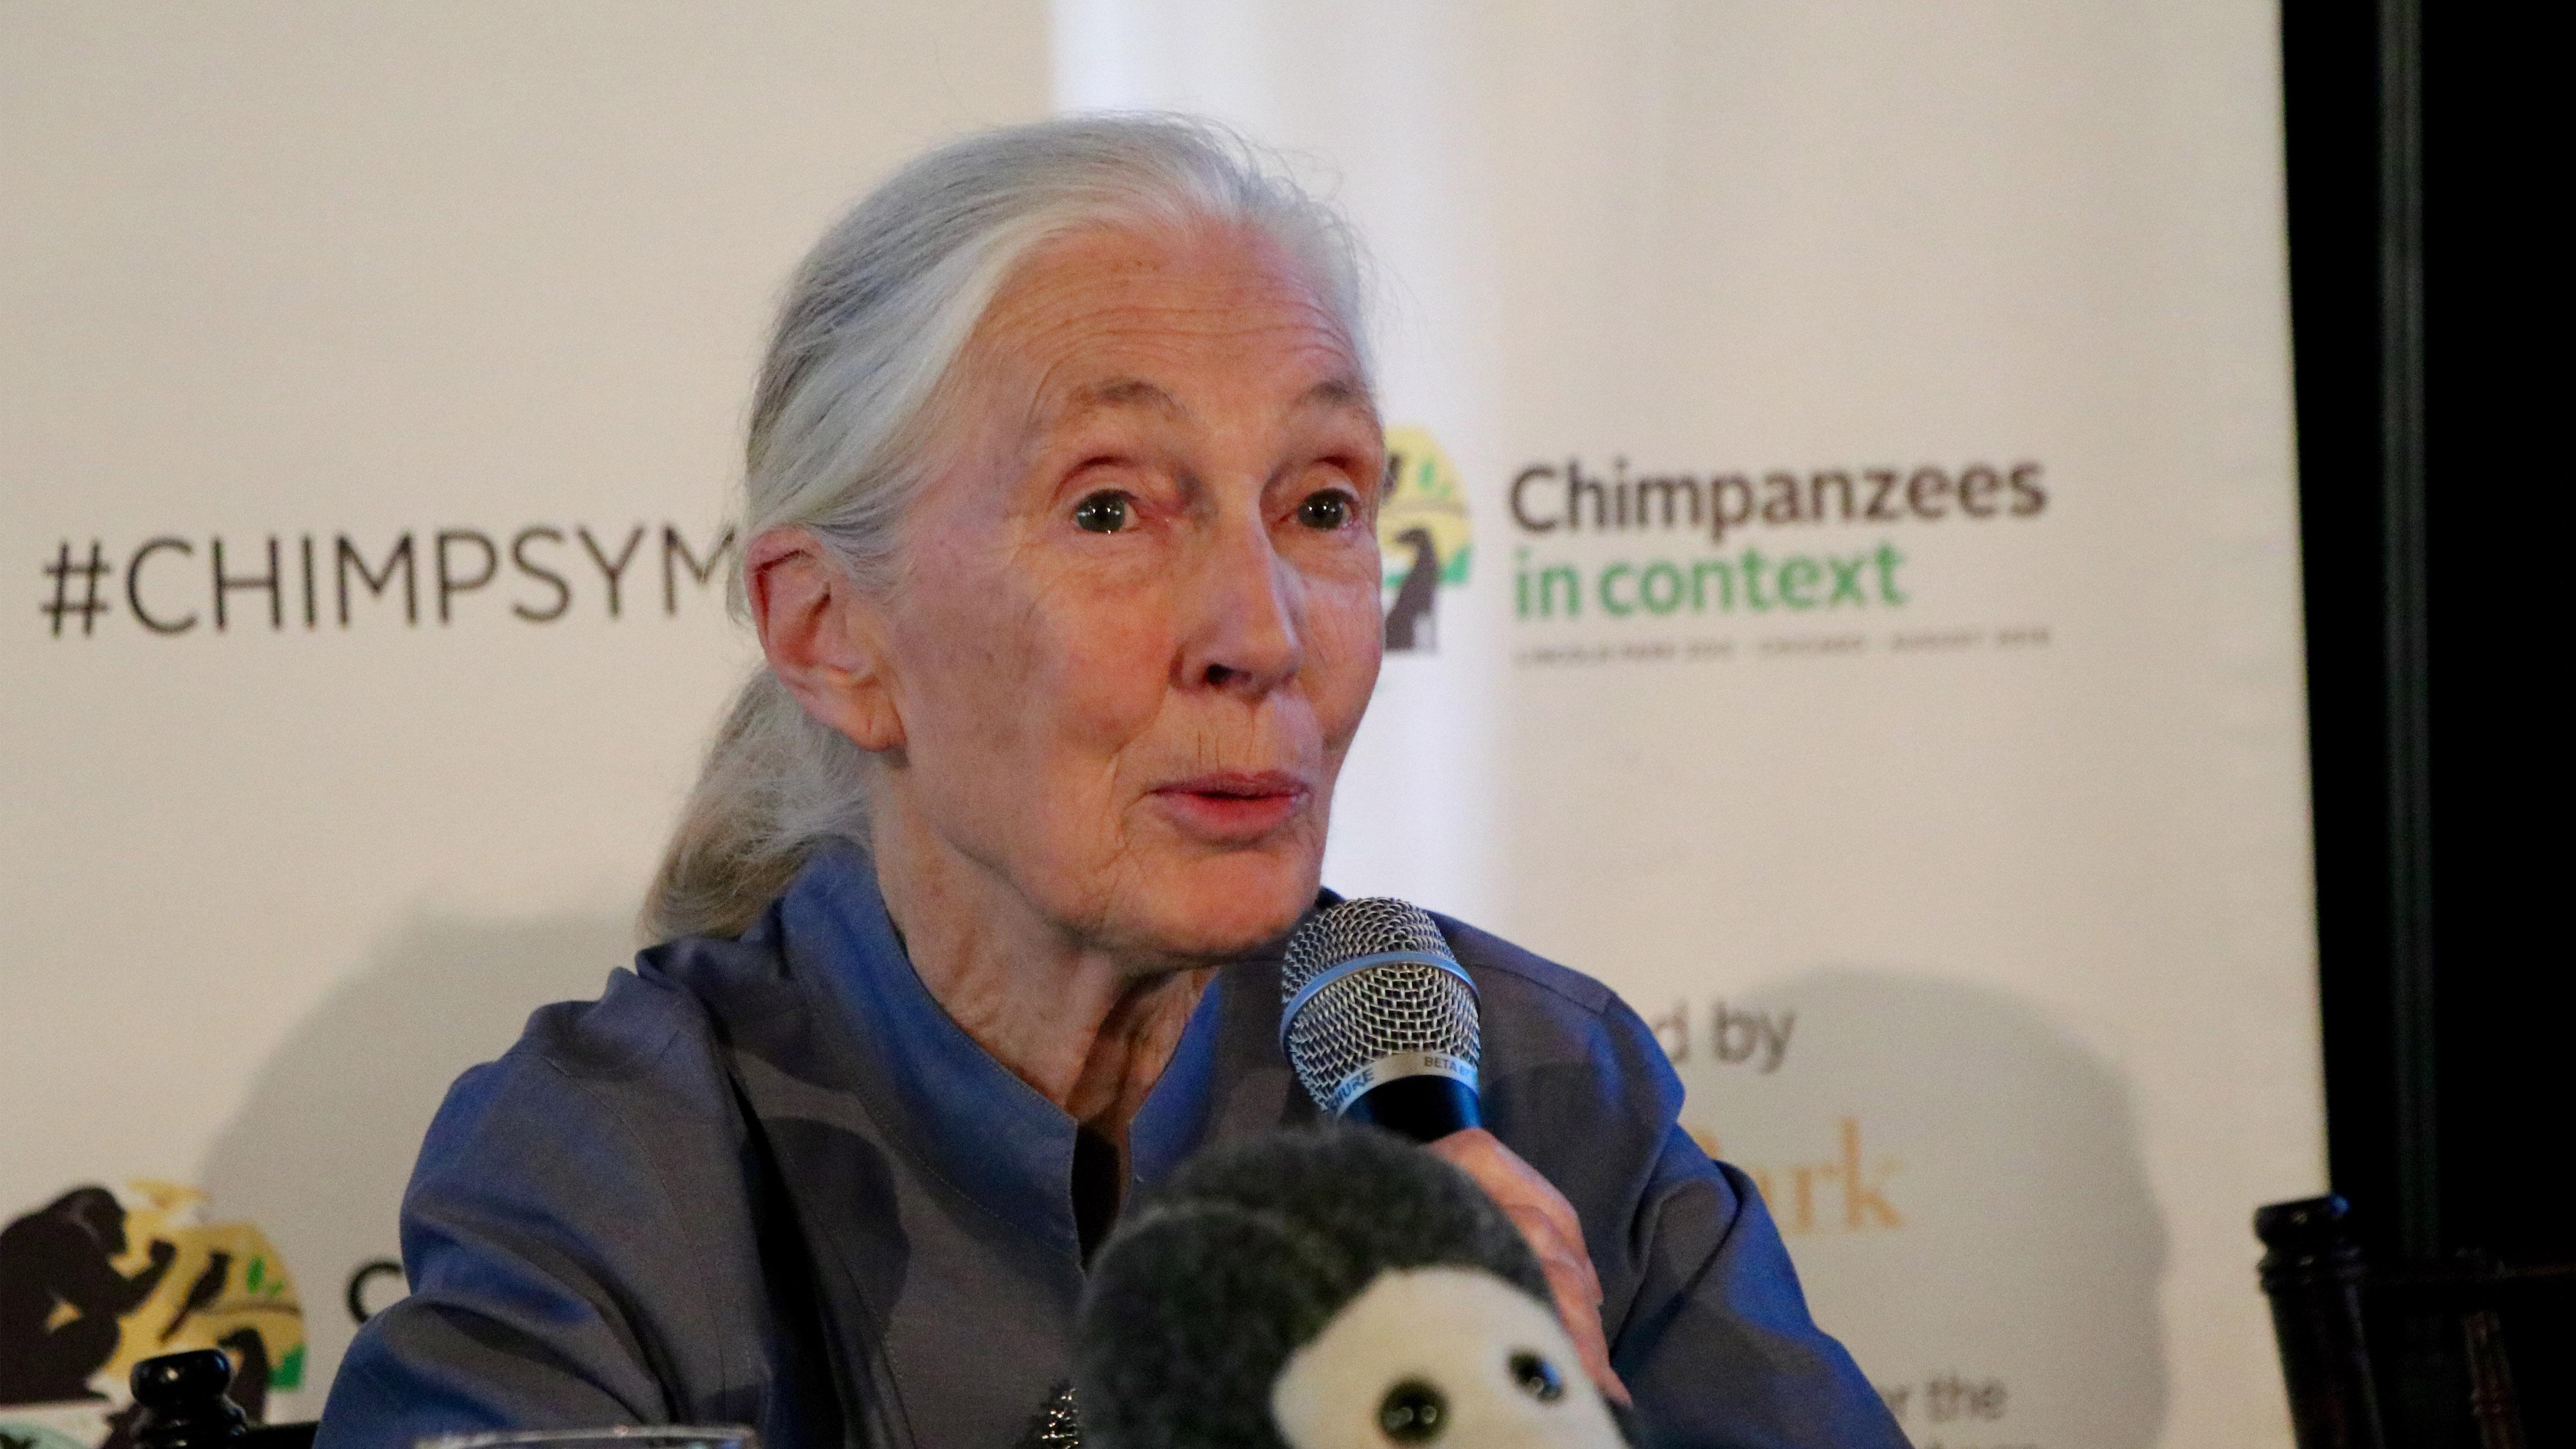 Dr. Jane Goodall speaks at the Lincoln Park Zoo on Thursday, the first day of the Chimpanzees in Context conference. (Evan Garcia / Chicago Tonight)